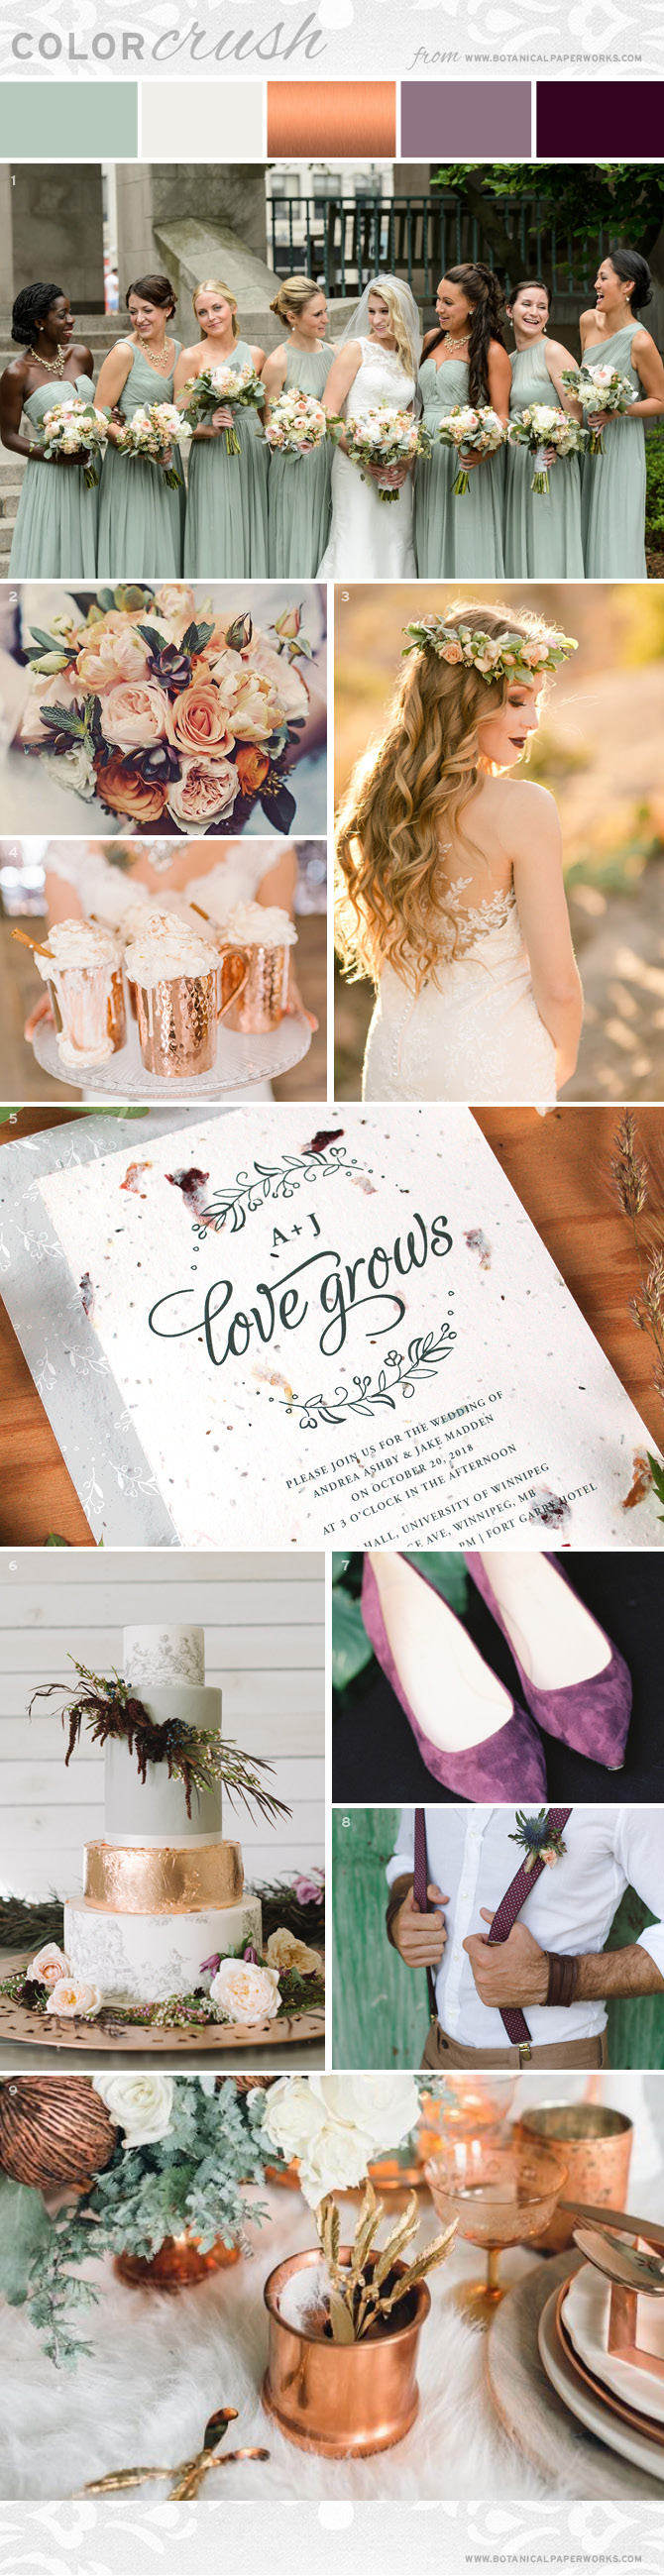 On trend, unique and perfect for autumn weddings, this color crush inspiration board features greyed jade, copper touches and deep plum accents. Find out how to create this look!